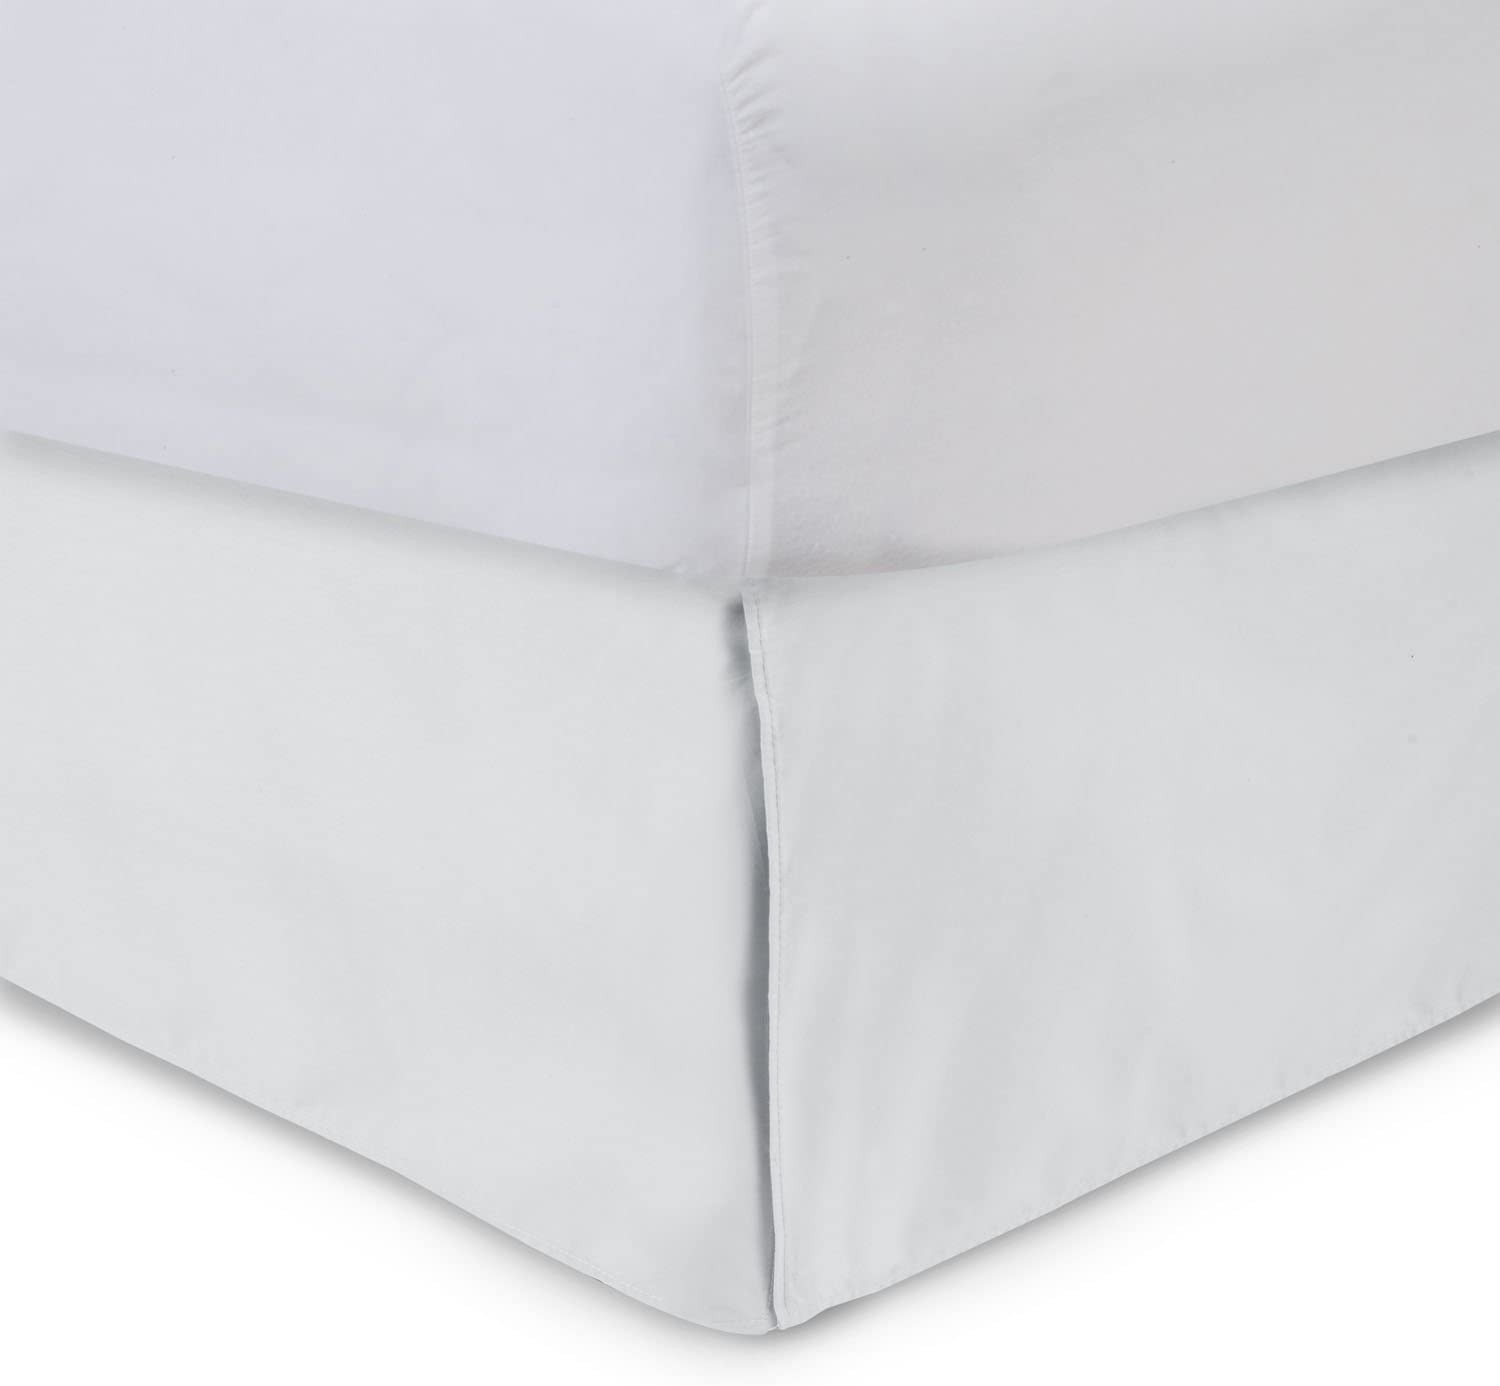 Tailored Bedskirt - 14 inch Drop, King, White Bed Skirt with Split Corners (Available in and 16 Colors) Blissford